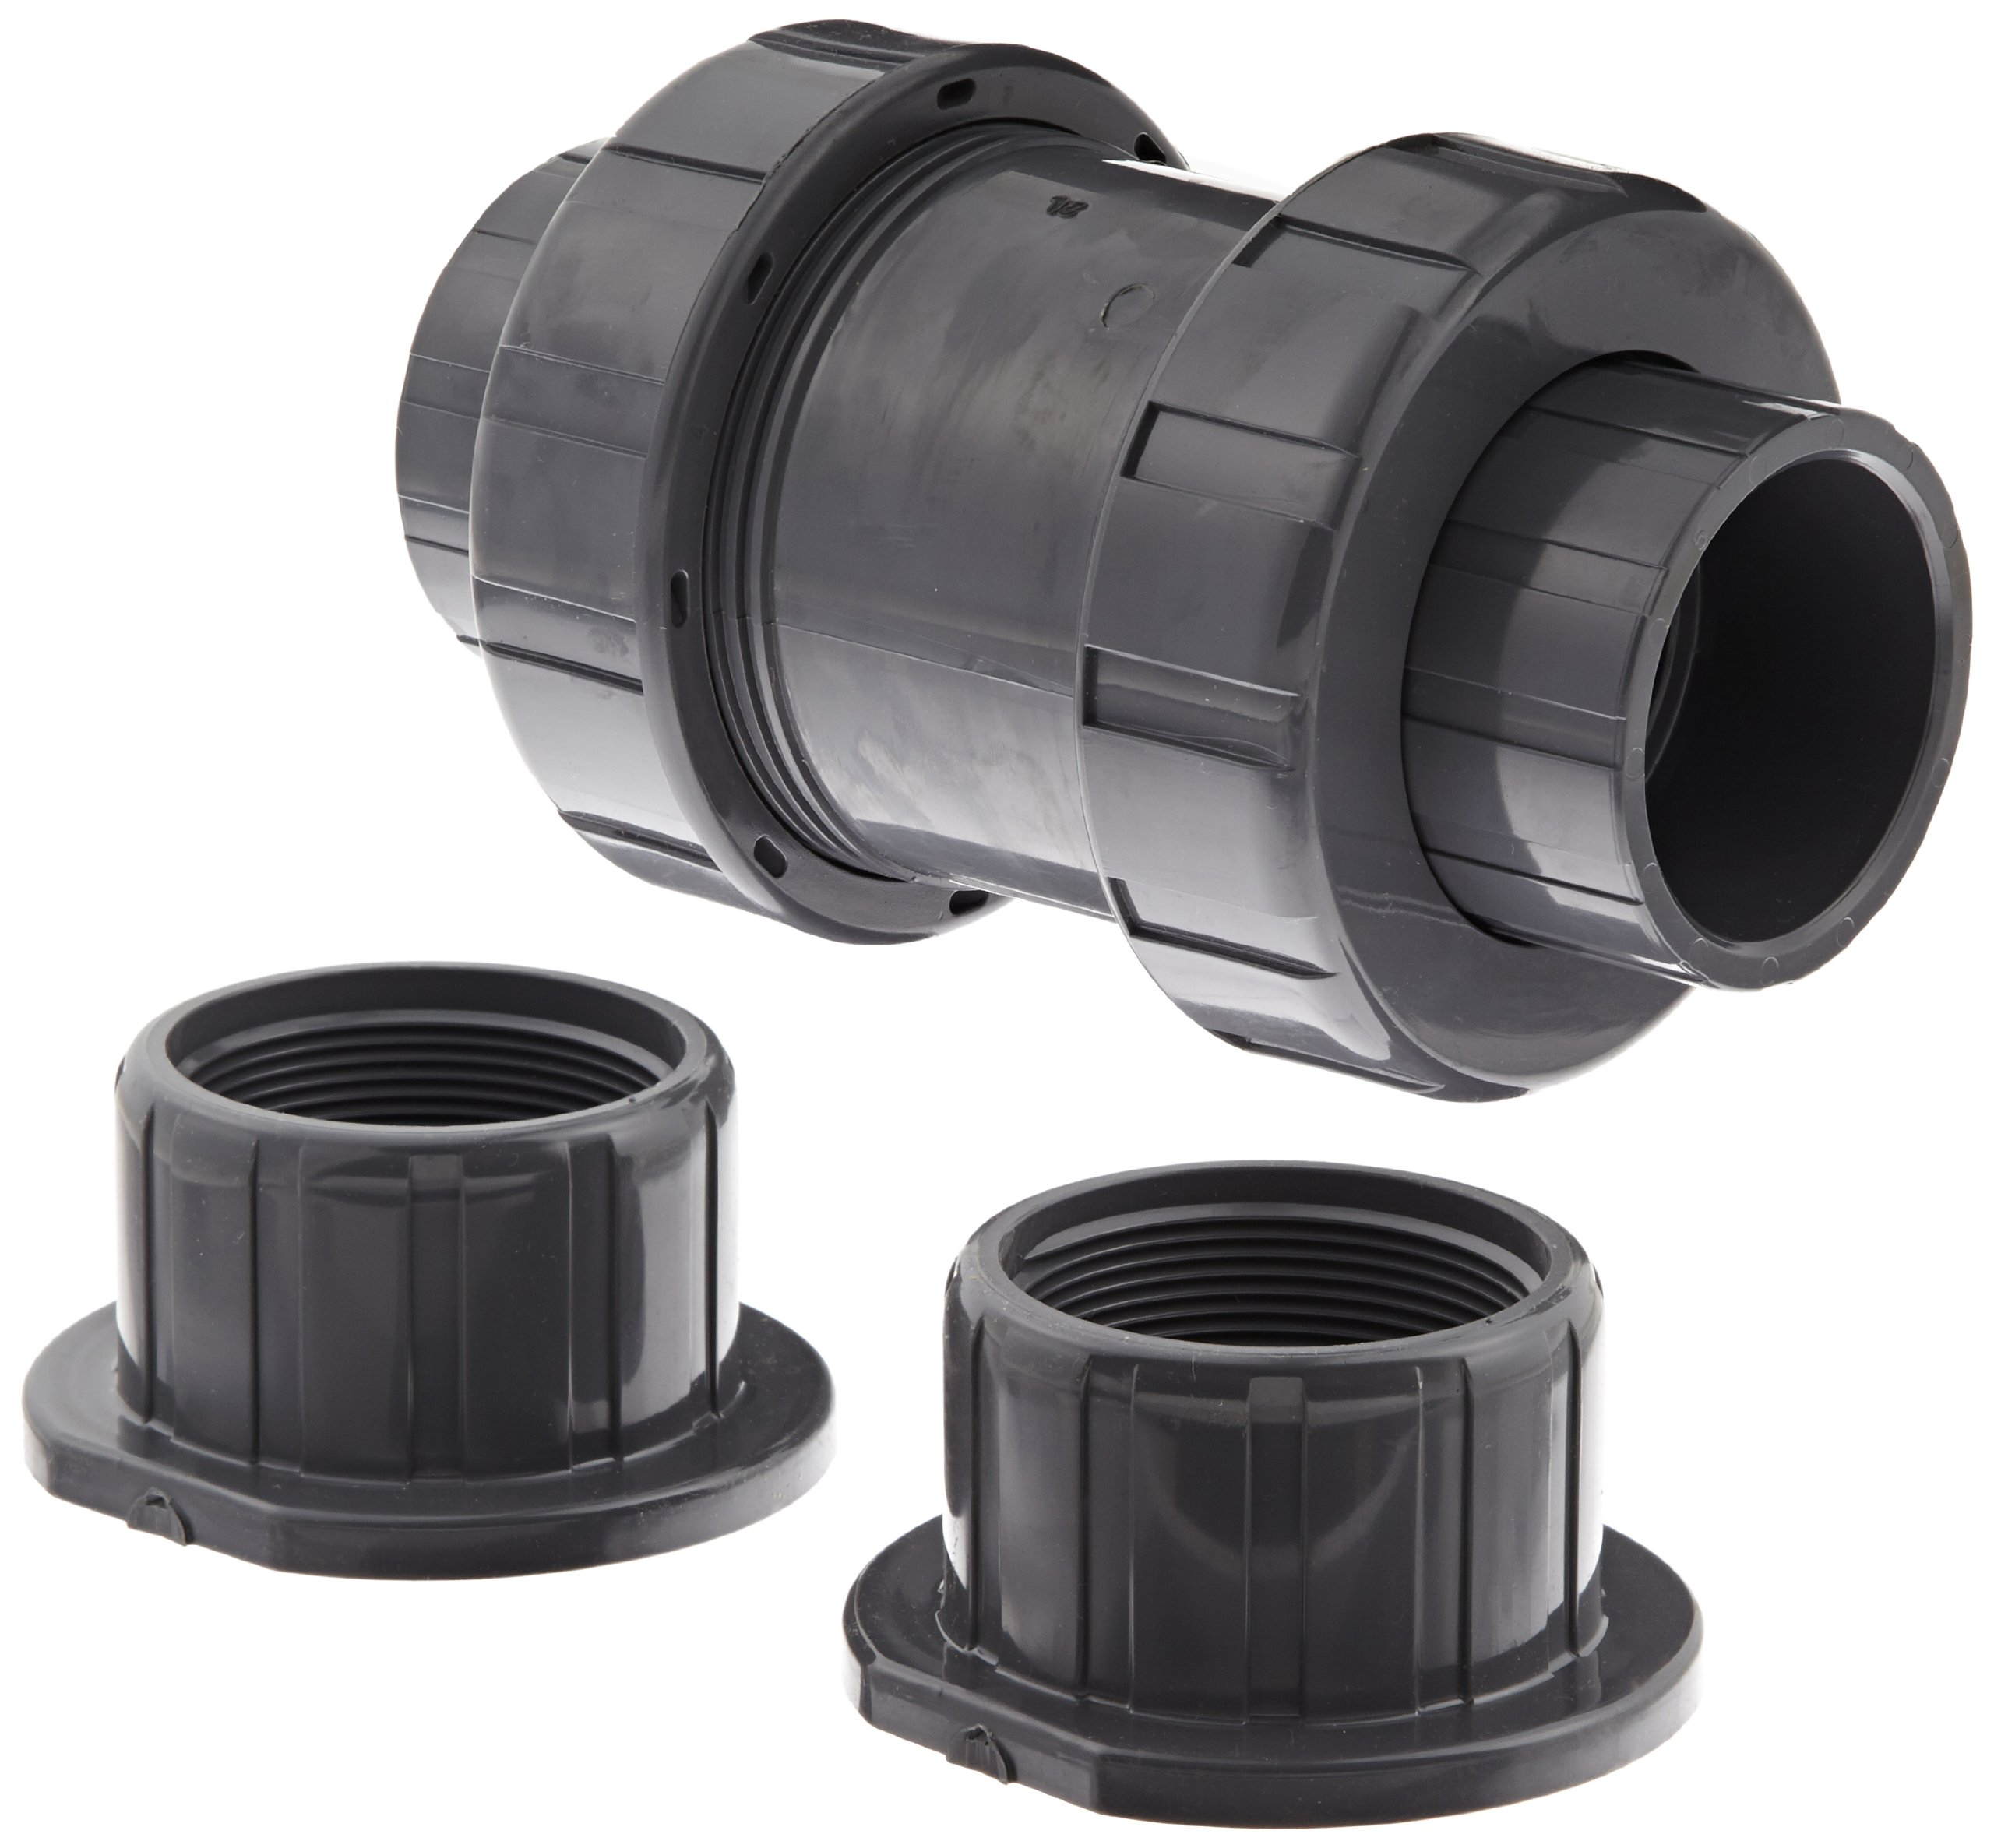 Hayward TC10200ST Series TC True Union Ball Check Valve, Socket/Threaded End, PVC with FPM Seals, 2'' Size